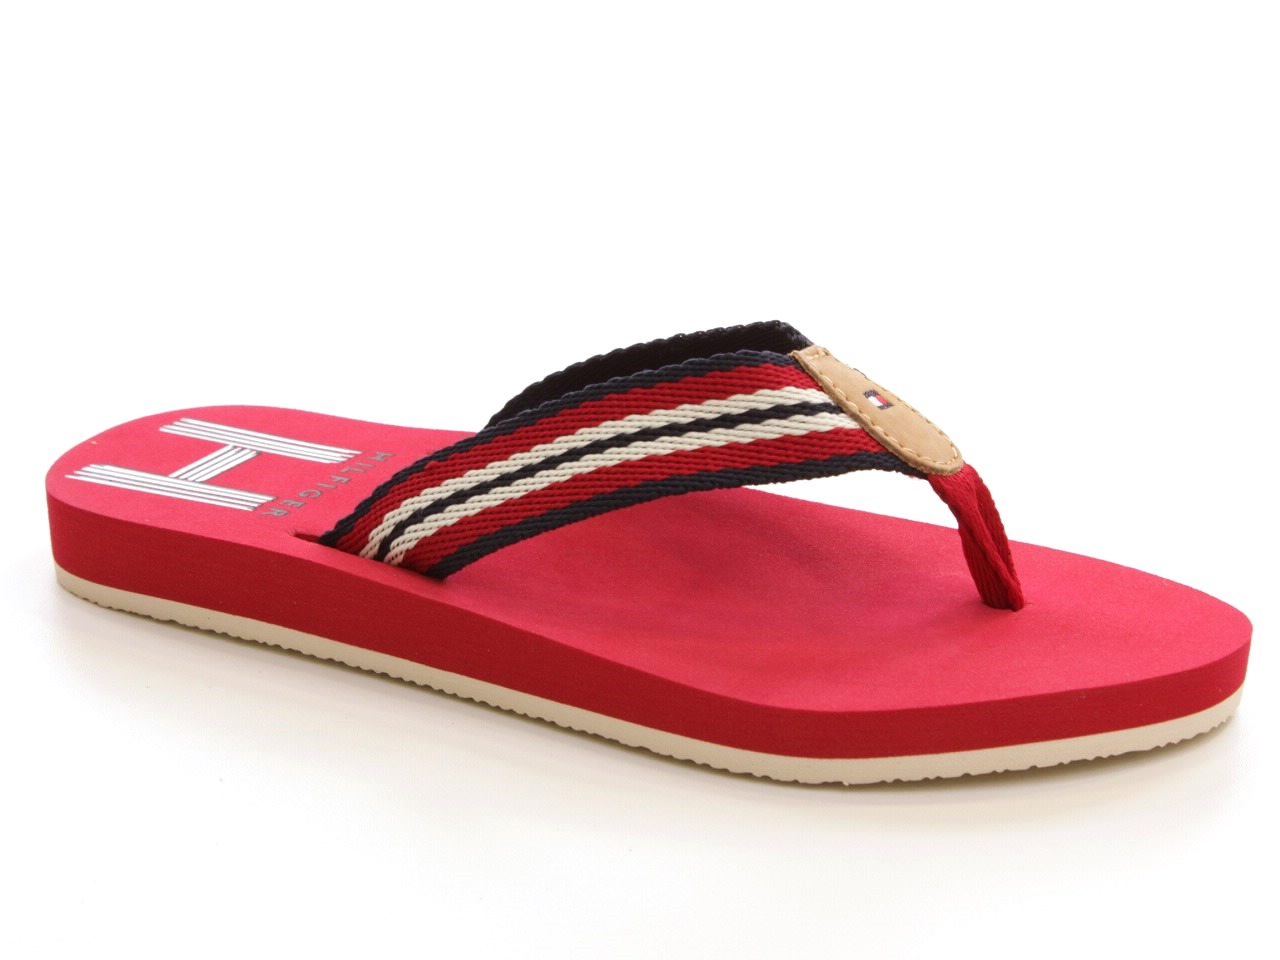 Claquettes Tommy Hilfiger - 309 18946